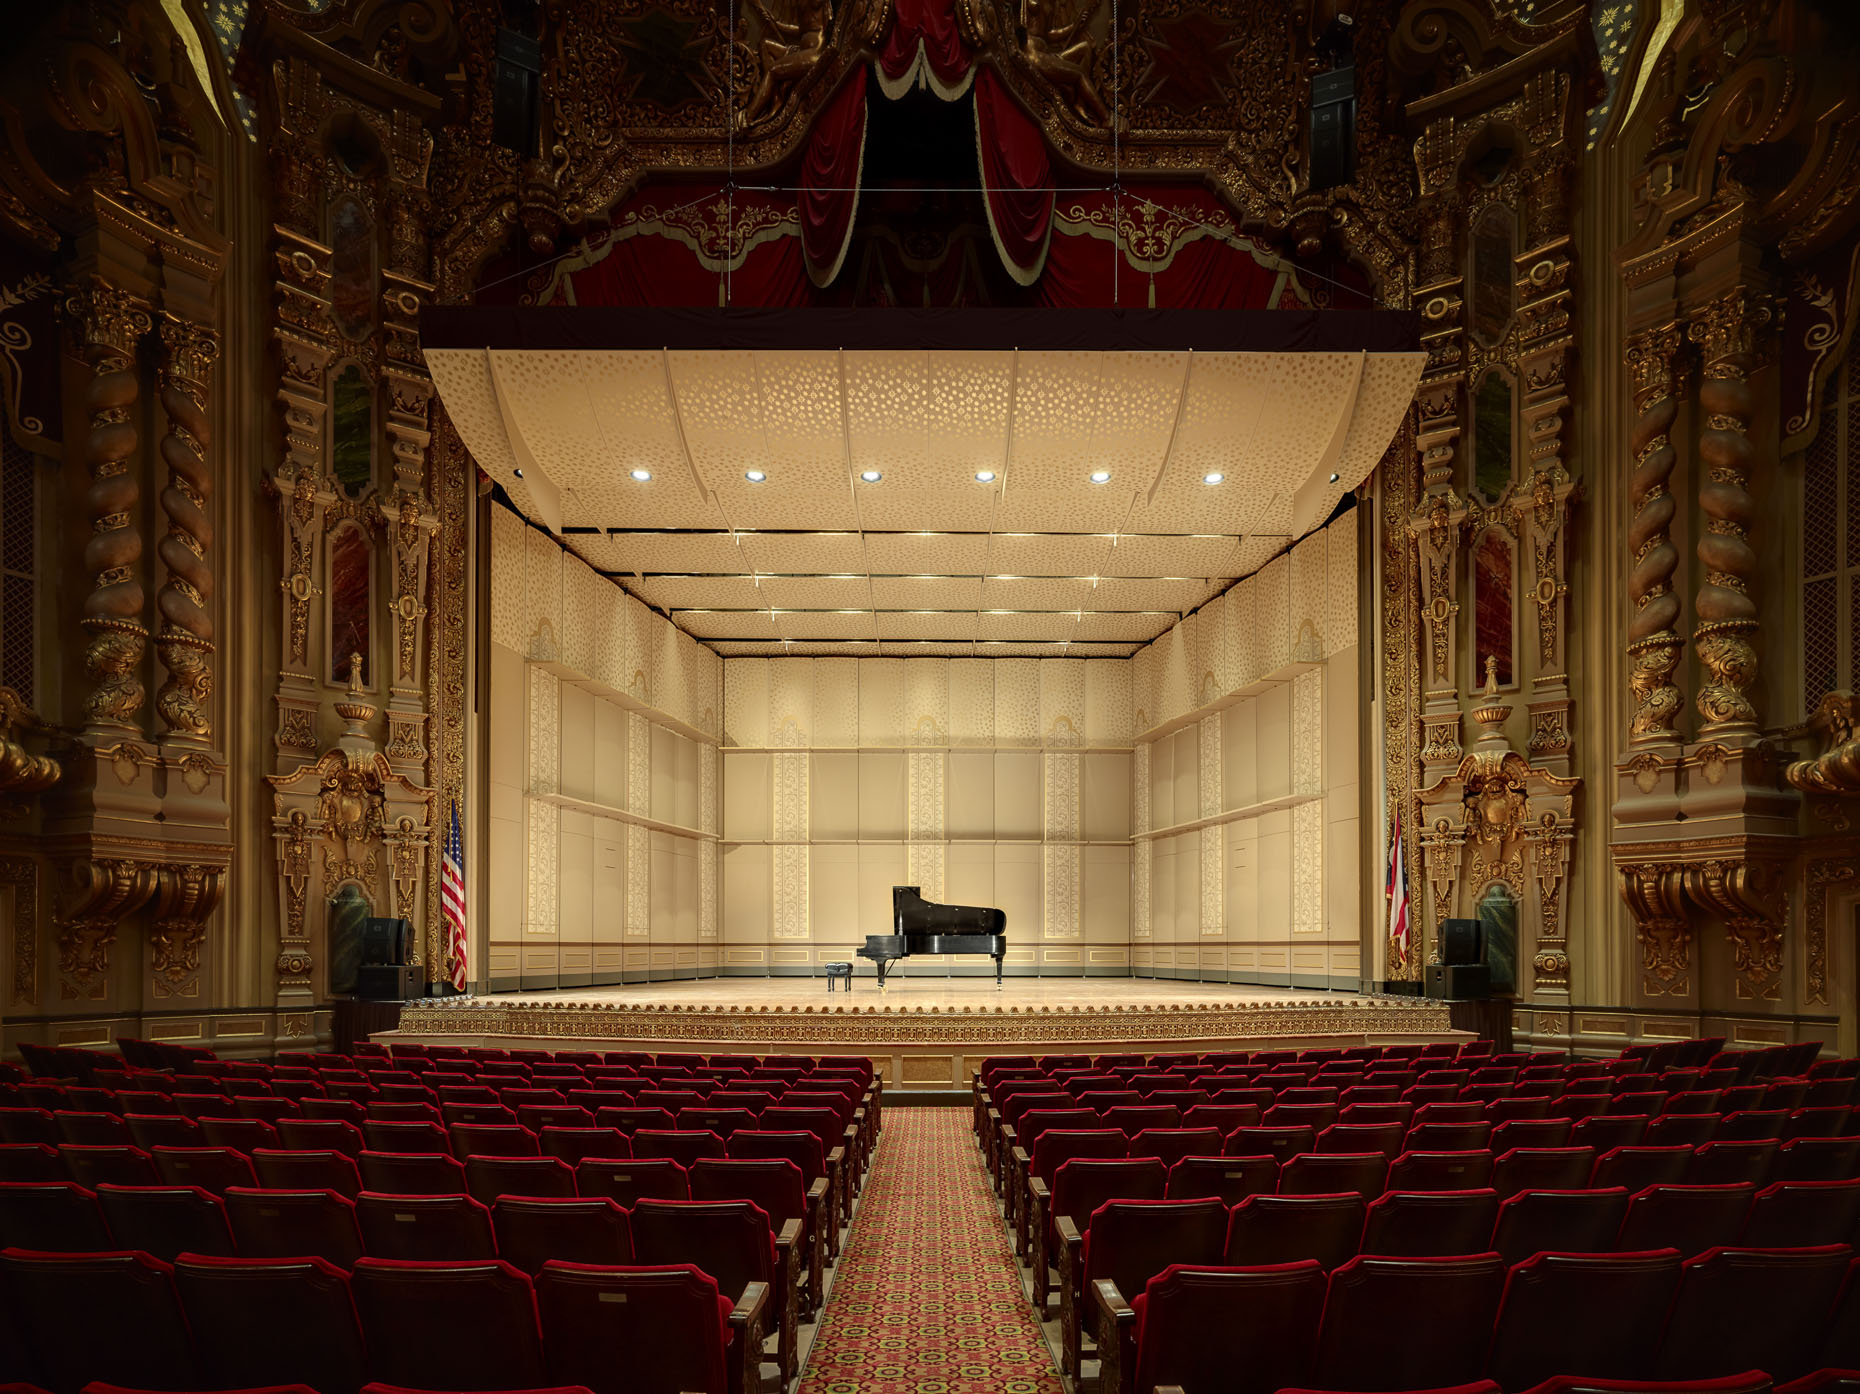 The Ohio Theater Orchestral Band Shell by Rogers Krajnak Architects photographed by BRad Feinknopf based in Columbus, Ohio